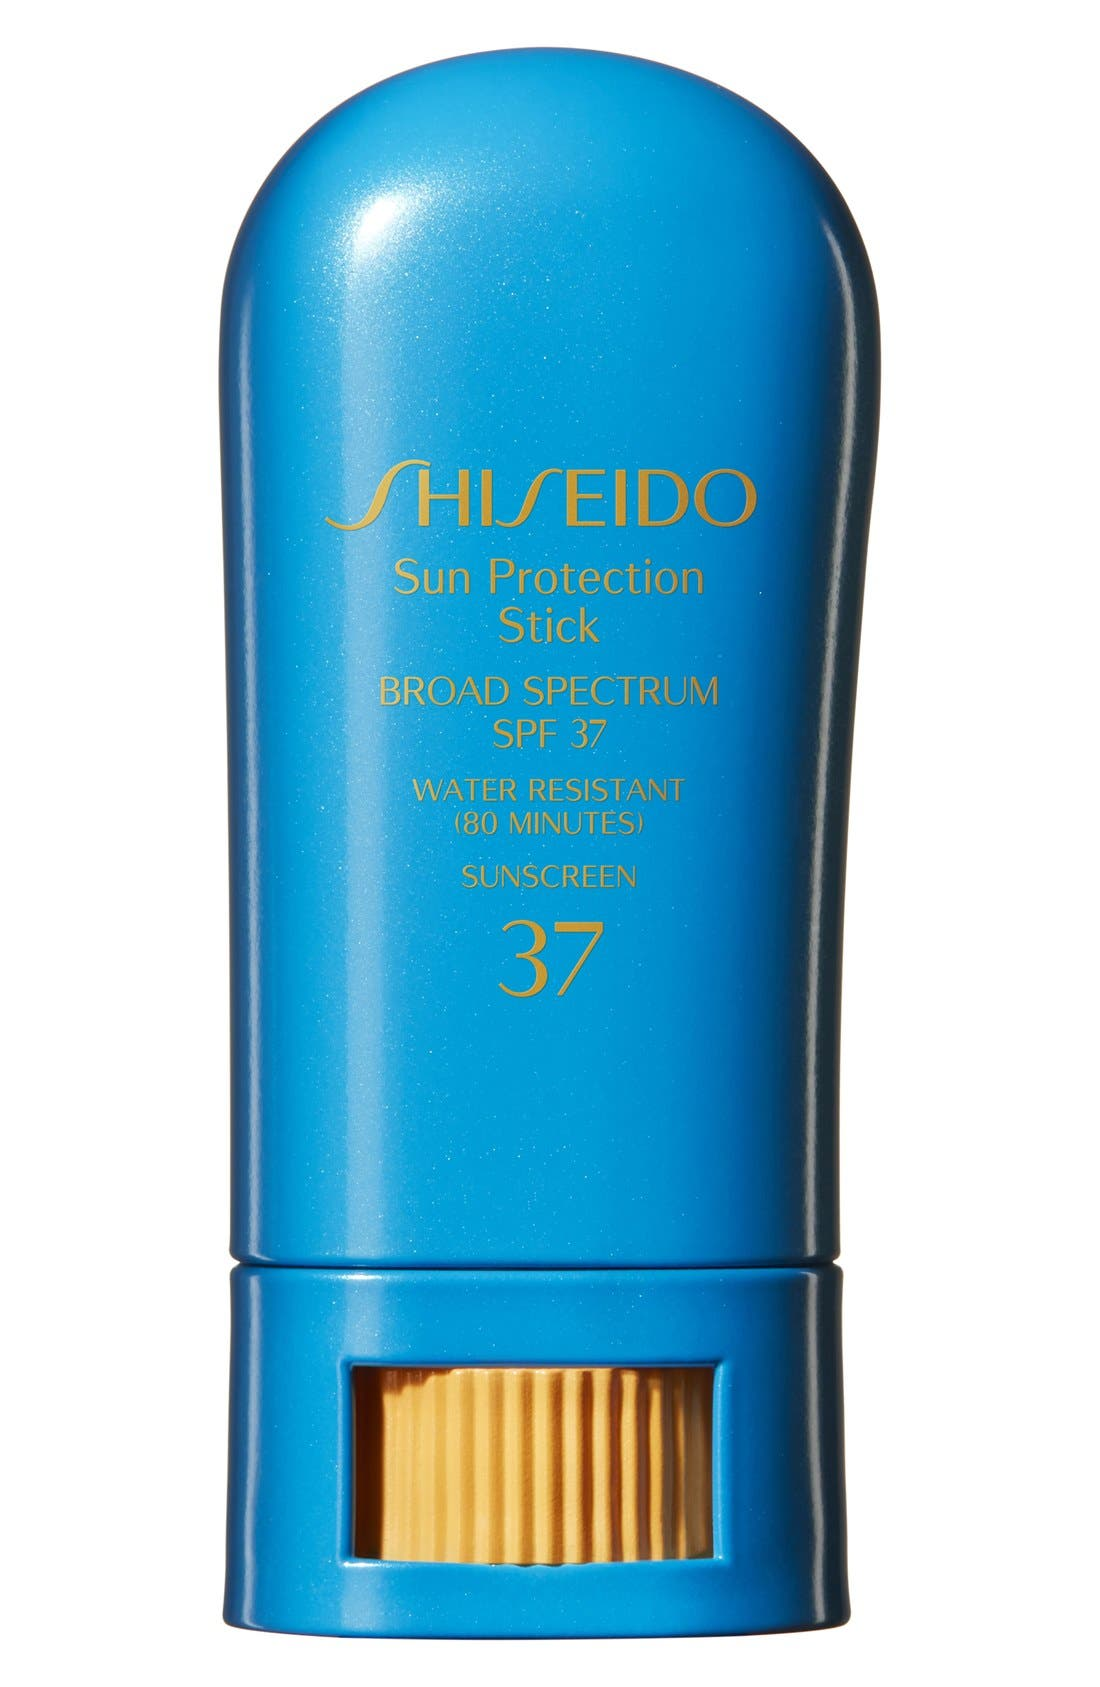 Shiseido Sun Protection Stick SPF 37